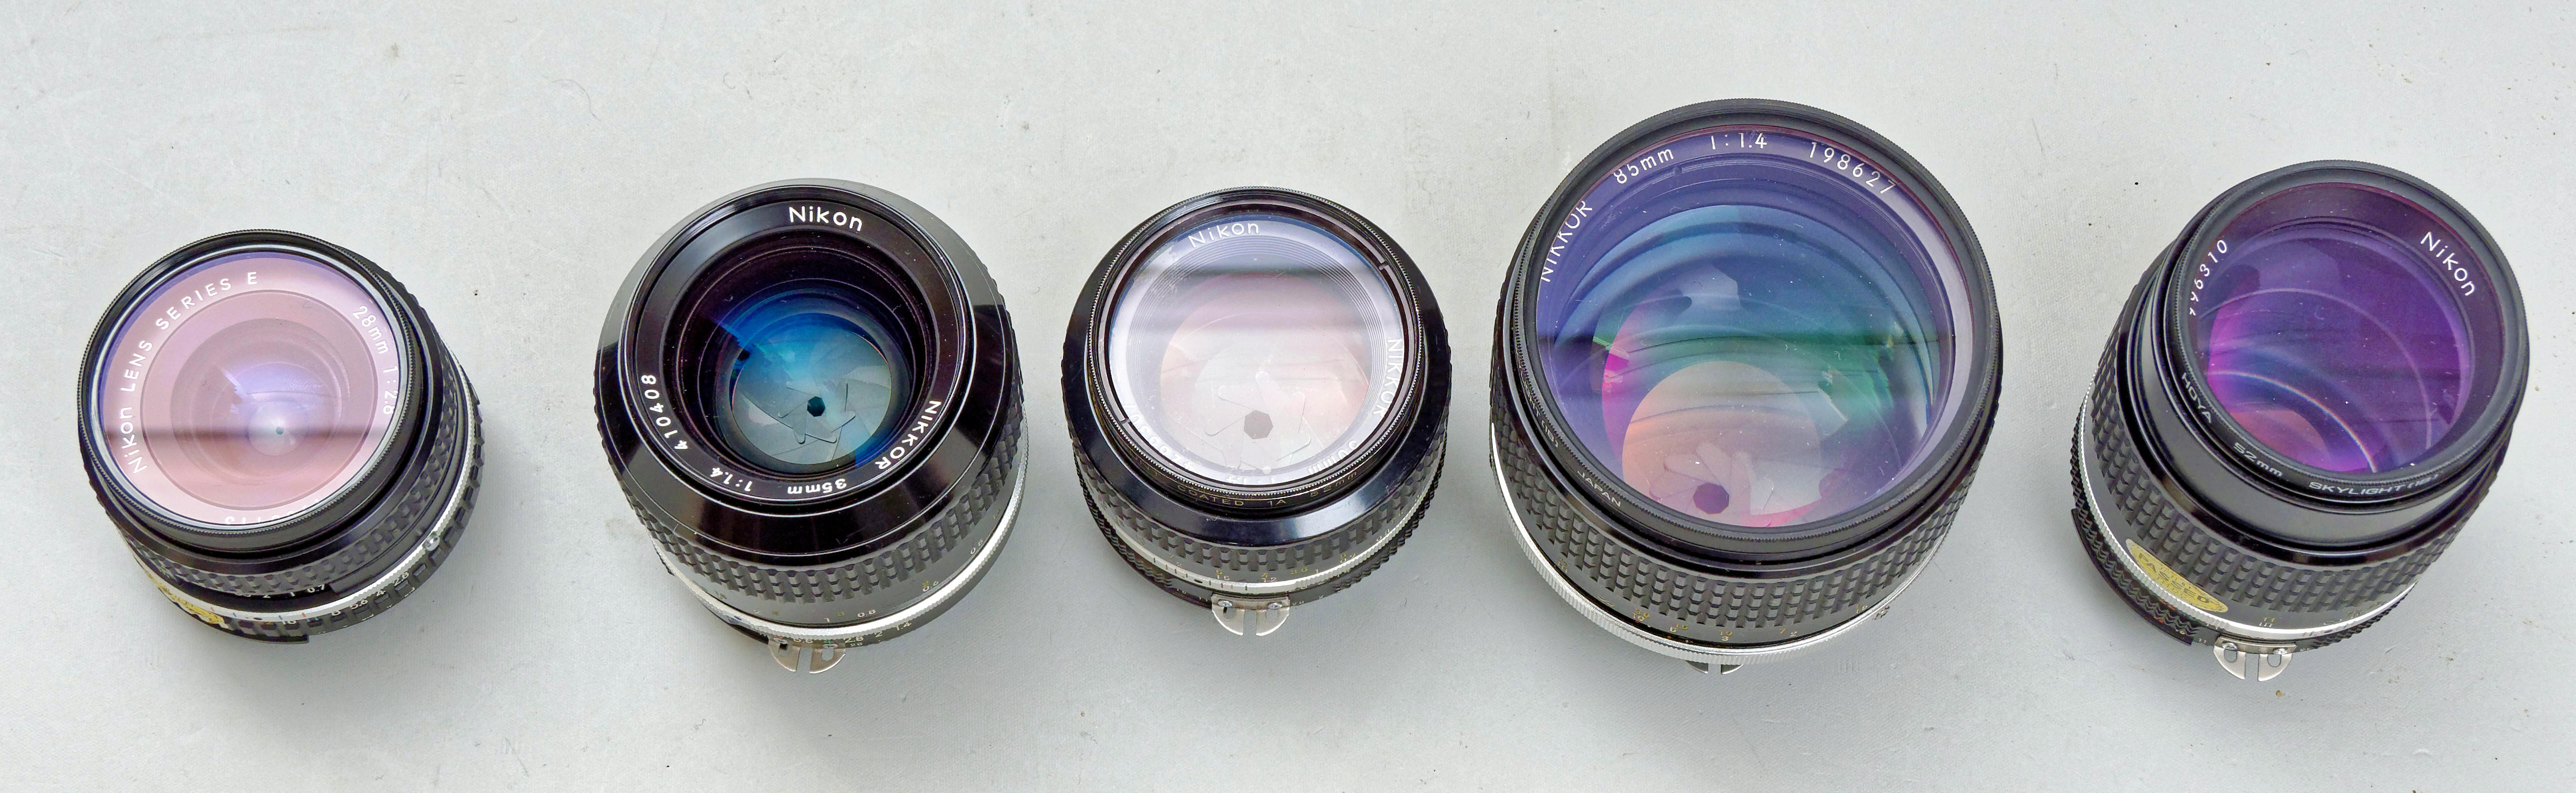 Nikon-lenses-4.jpeg